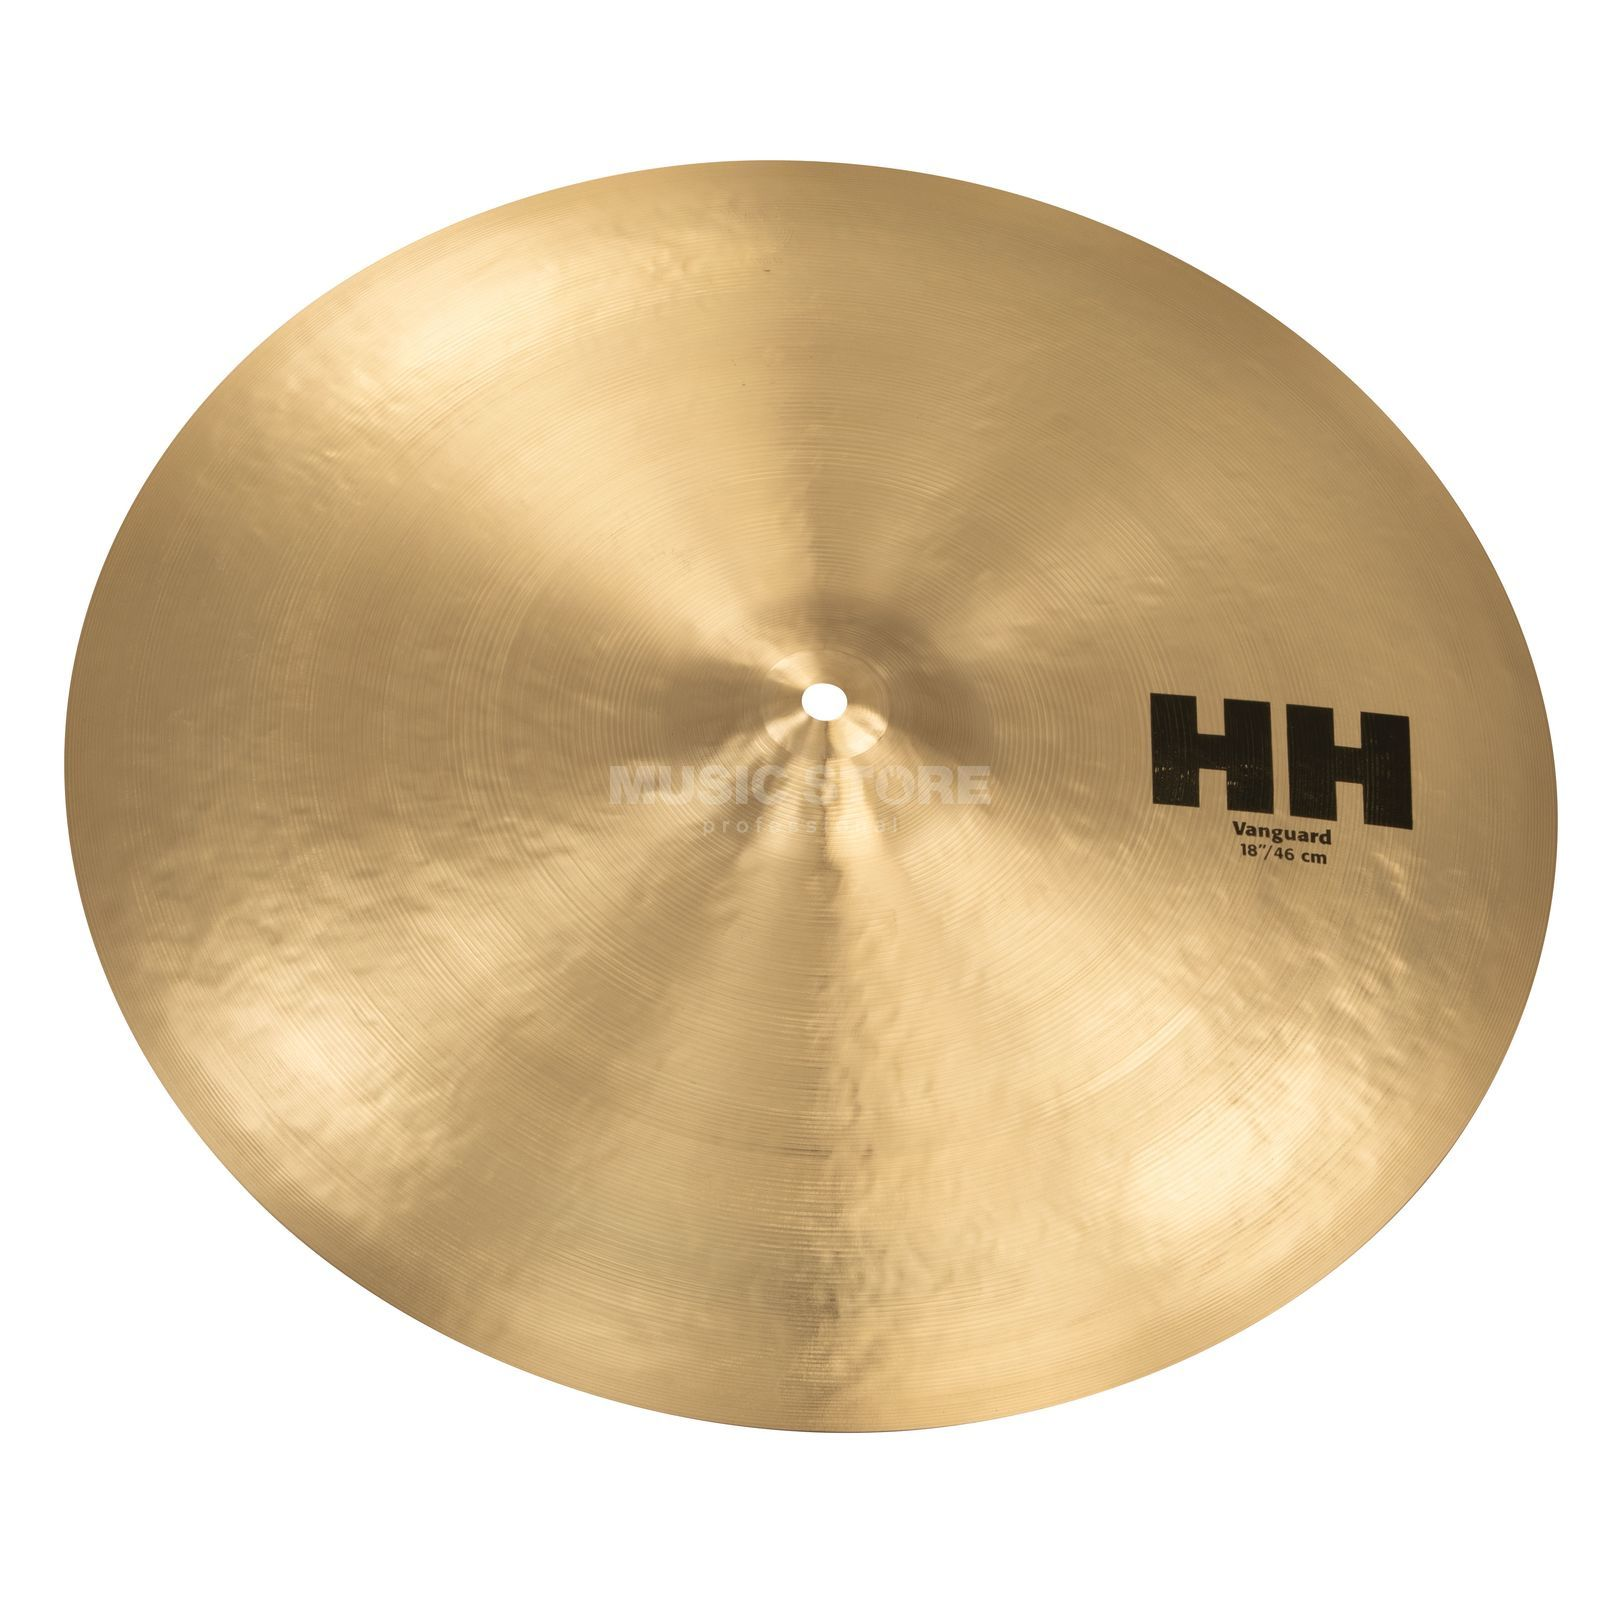 "Sabian HH Vanguard Crash 18"", Remastered Изображение товара"